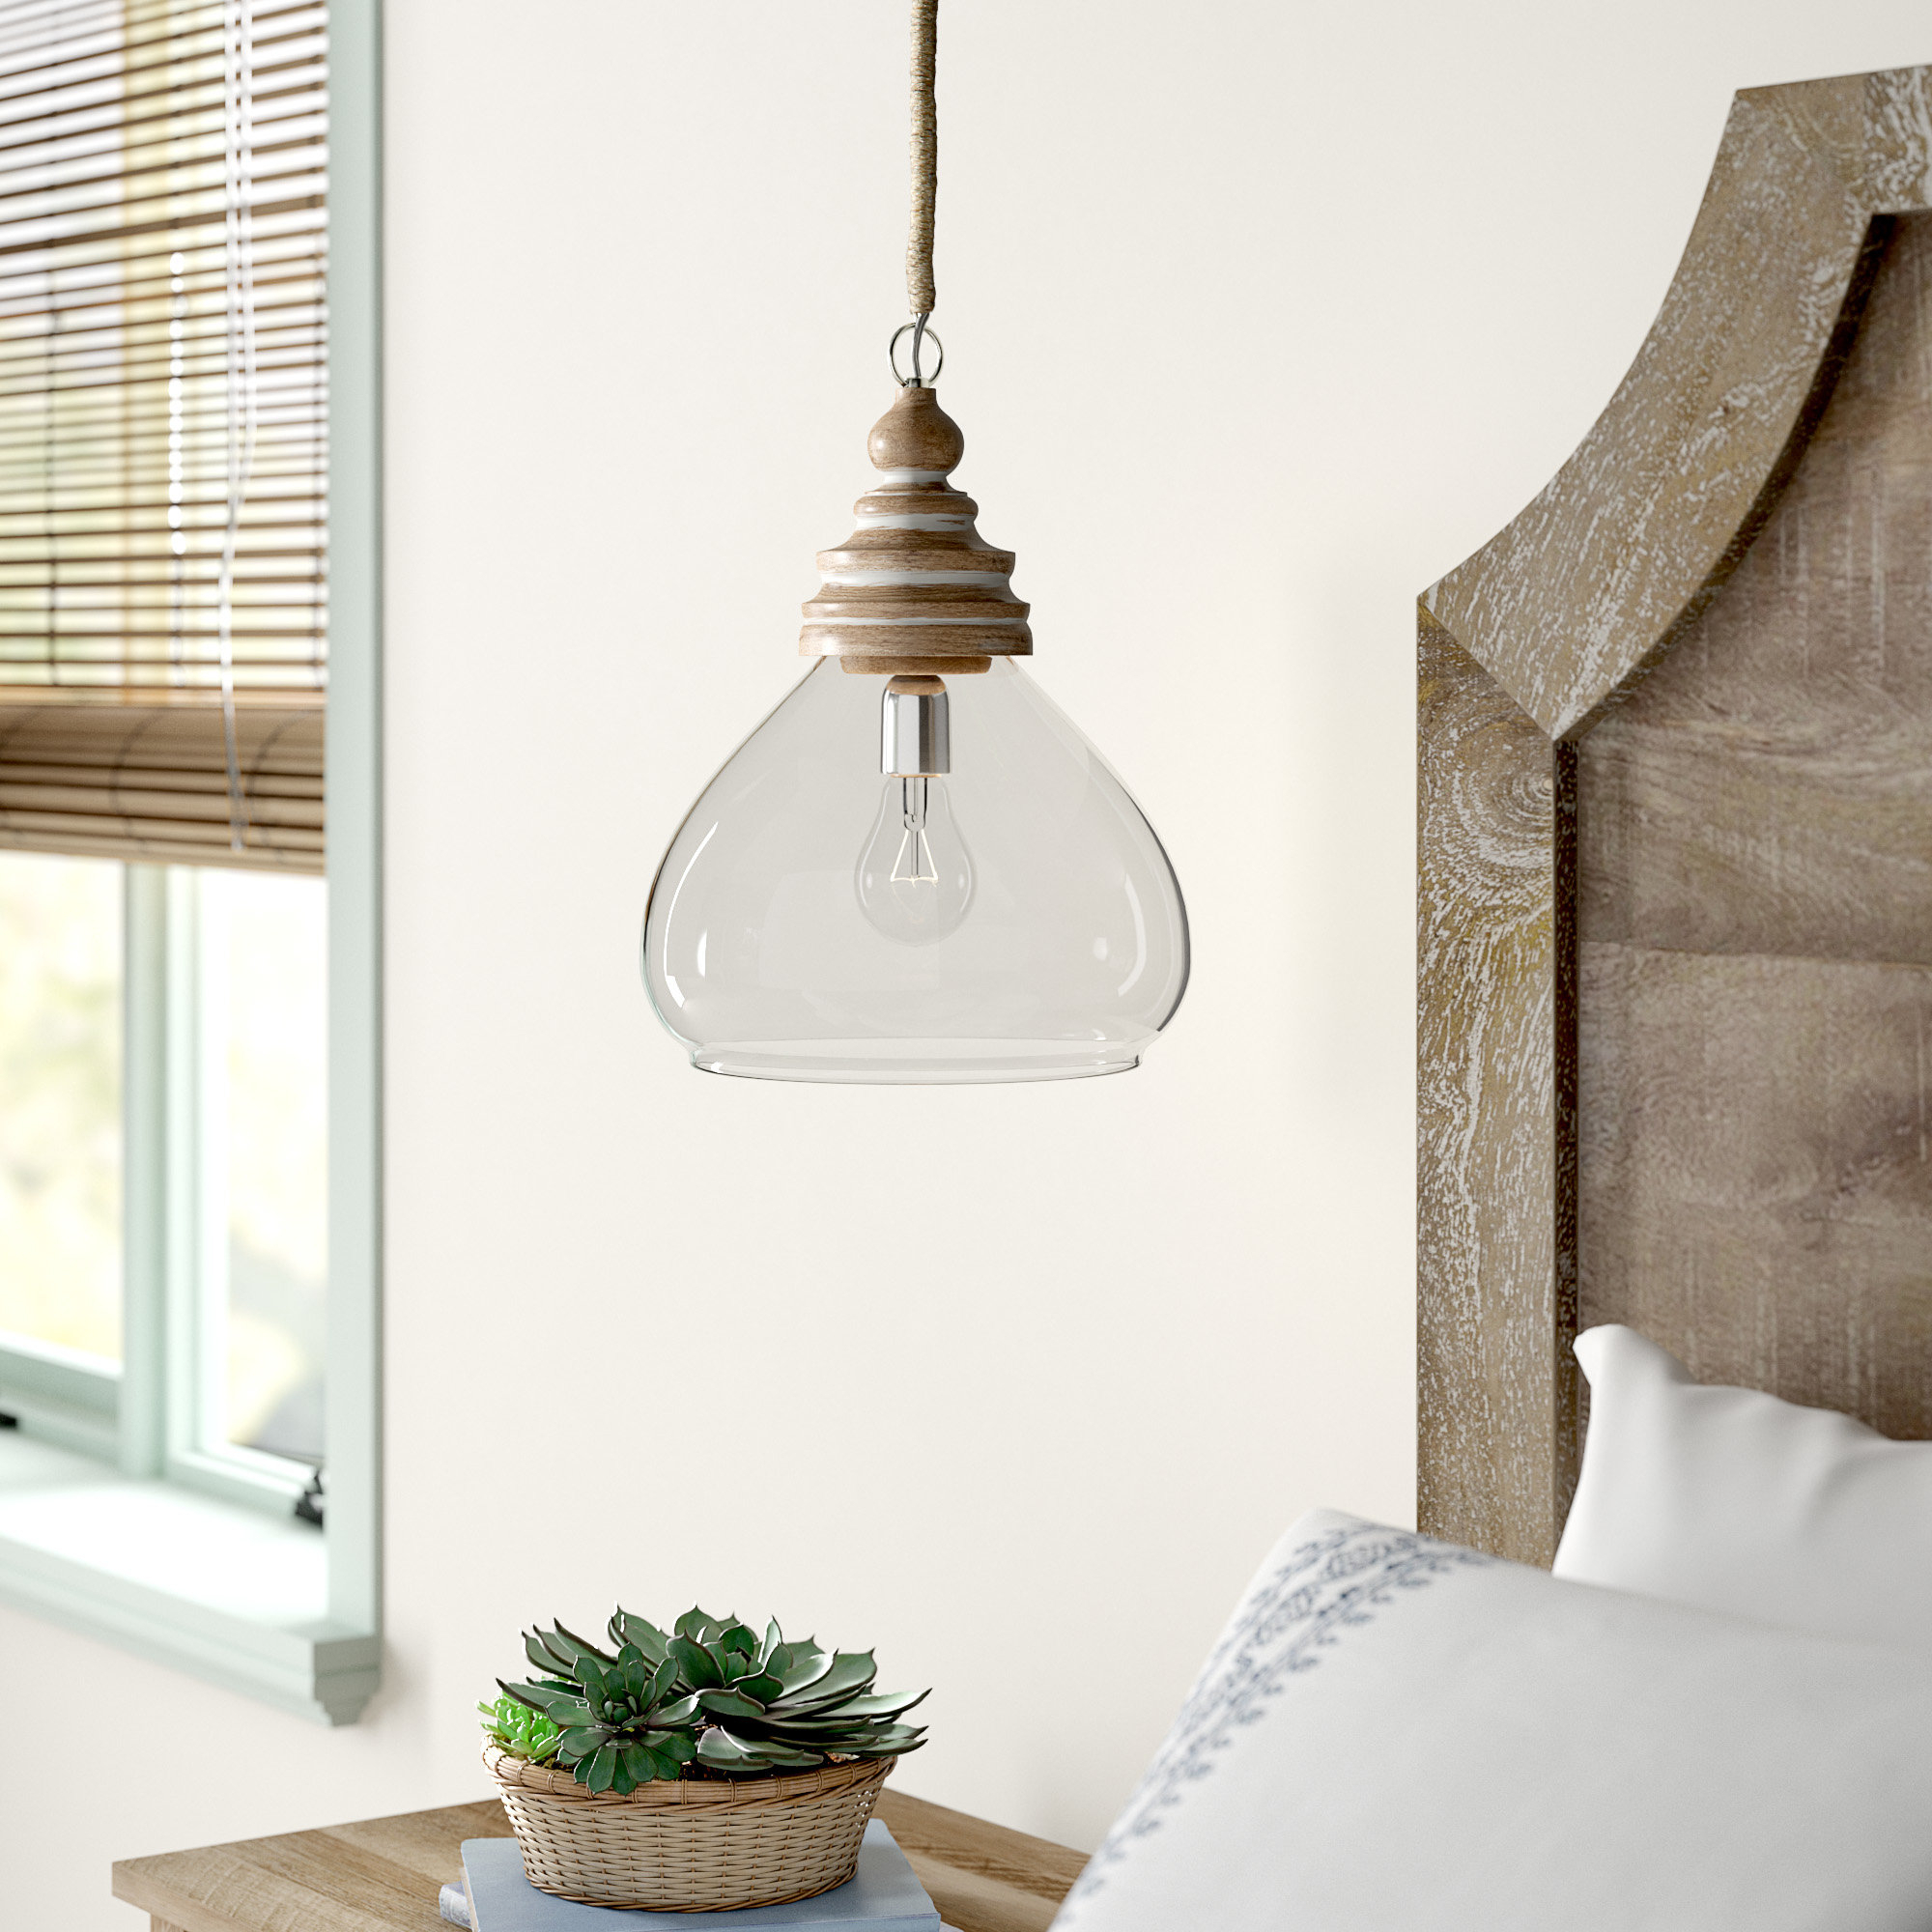 Brisa 1 Light Single Dome Pendant Within Moyer 1 Light Single Cylinder Pendants (View 23 of 30)